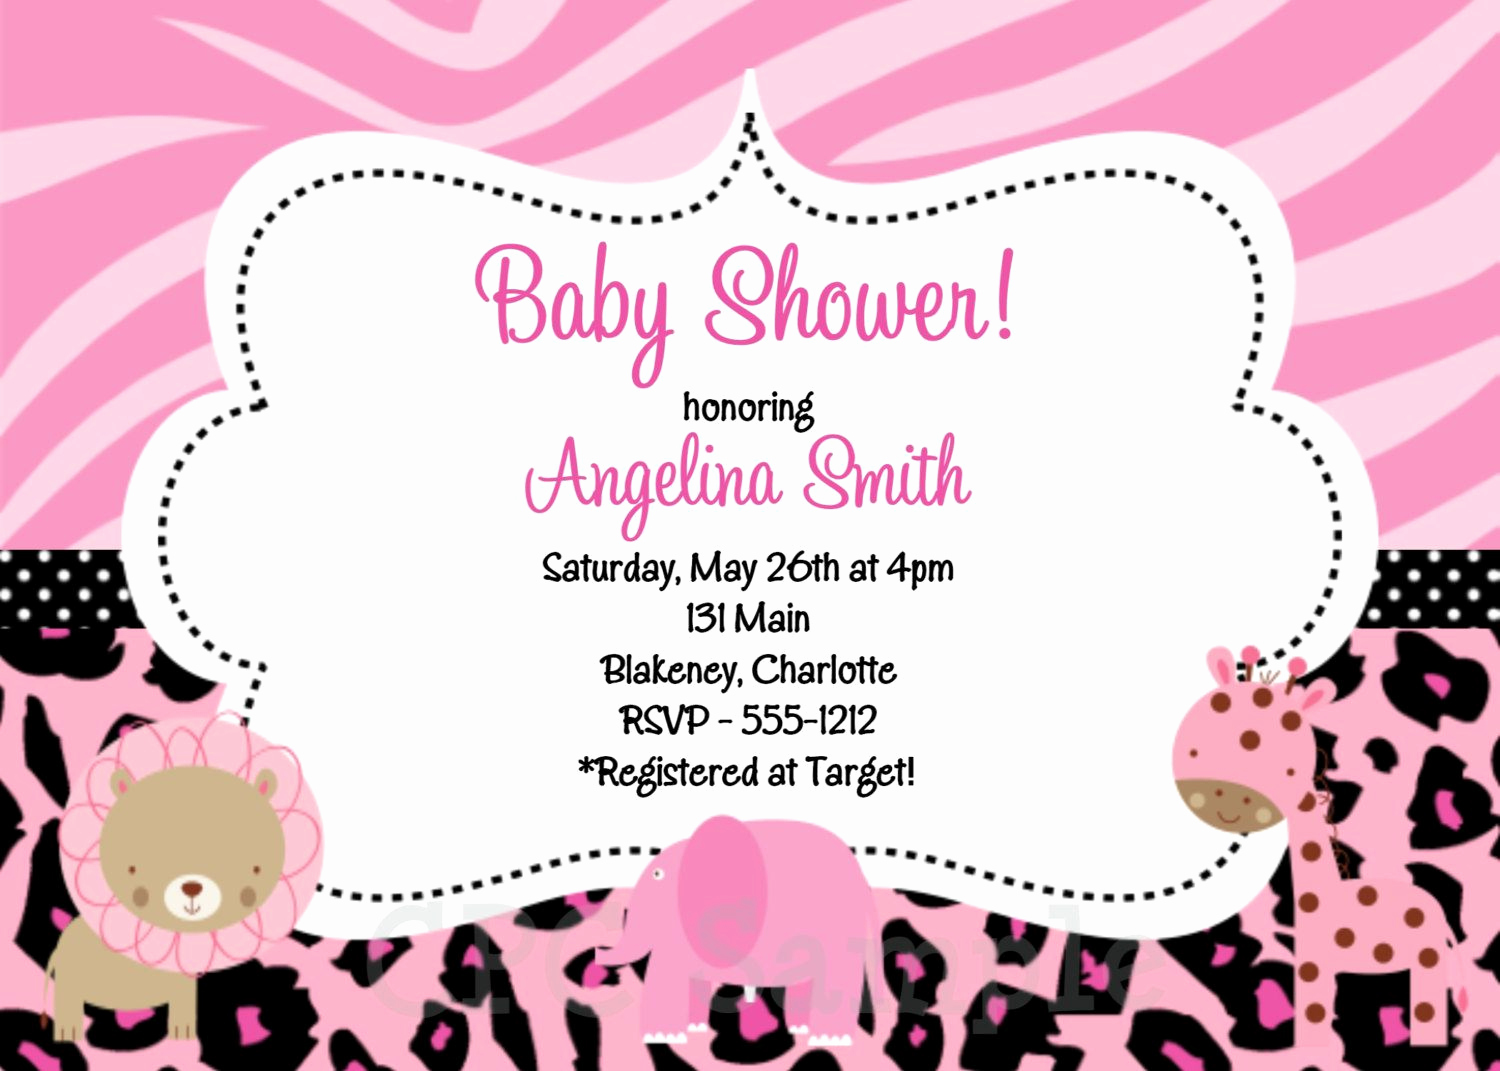 Baby Shower Pics for Invitation Beautiful Baby Shower Invitation Baby Girl Shower Invitations